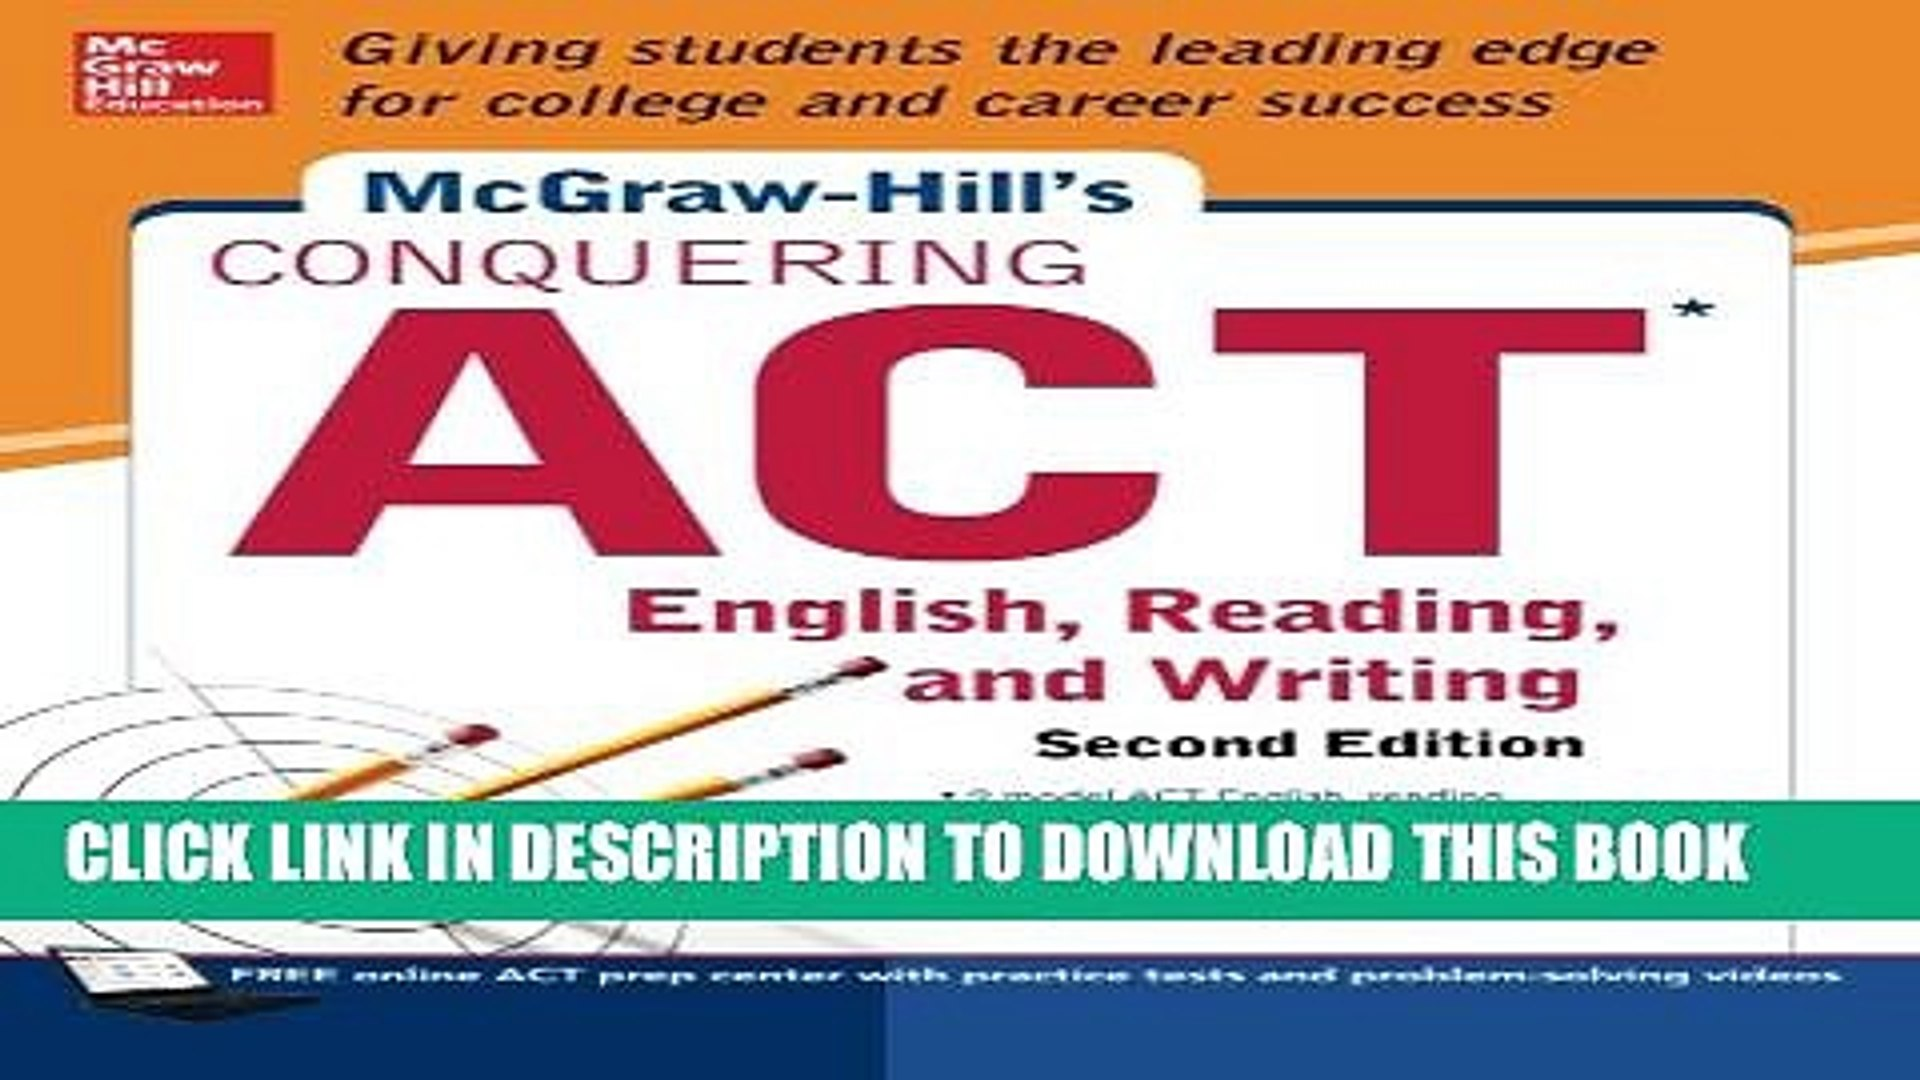 McGraw-Hills Conquering ACT: English, Reading, and Writing